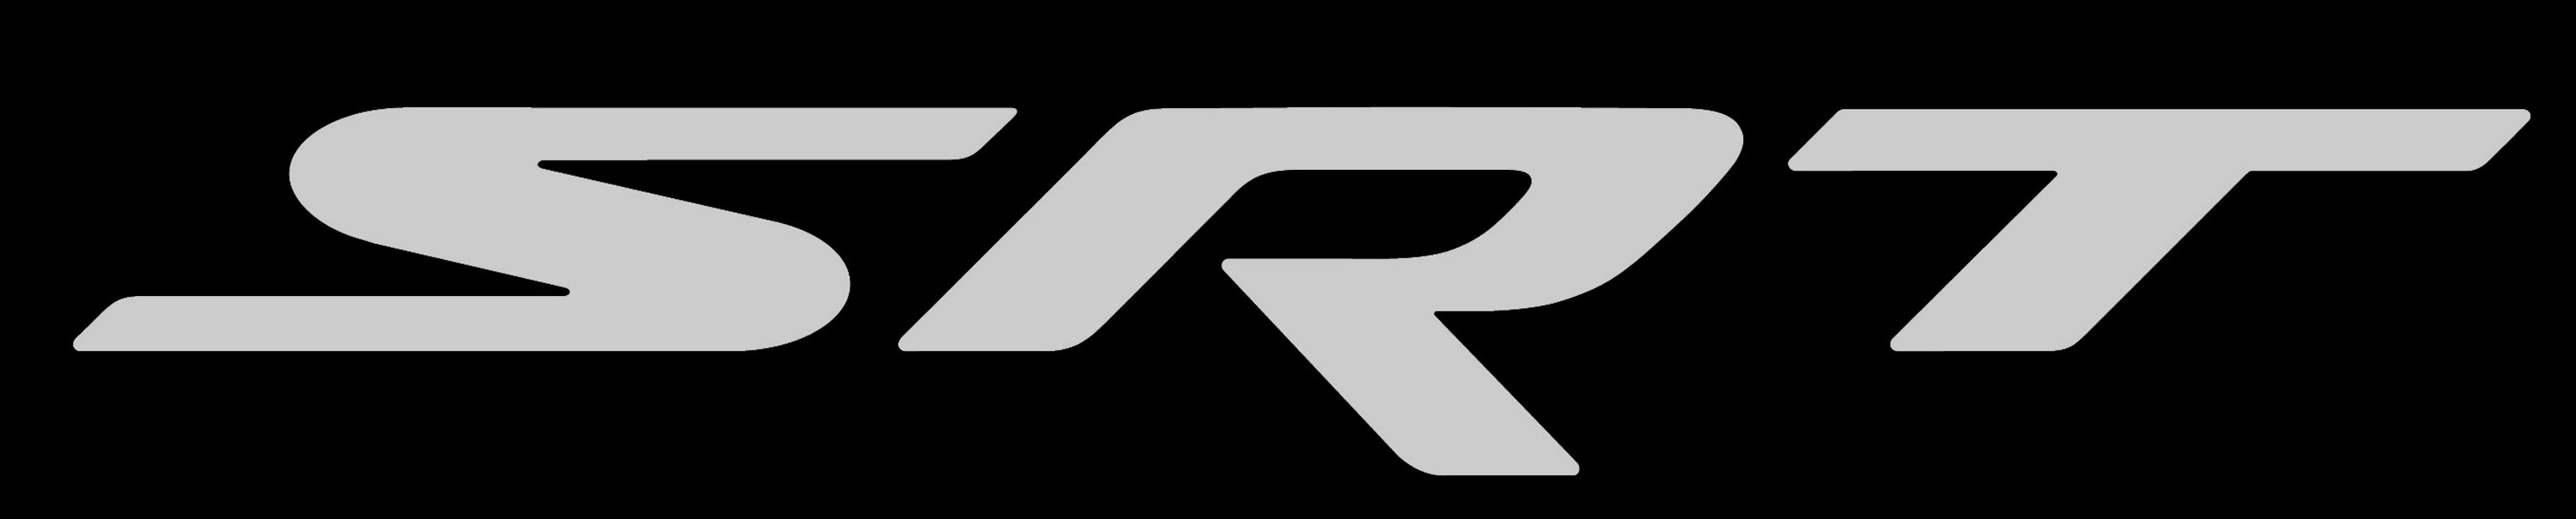 Srt Logo Good Galleries 3000x605